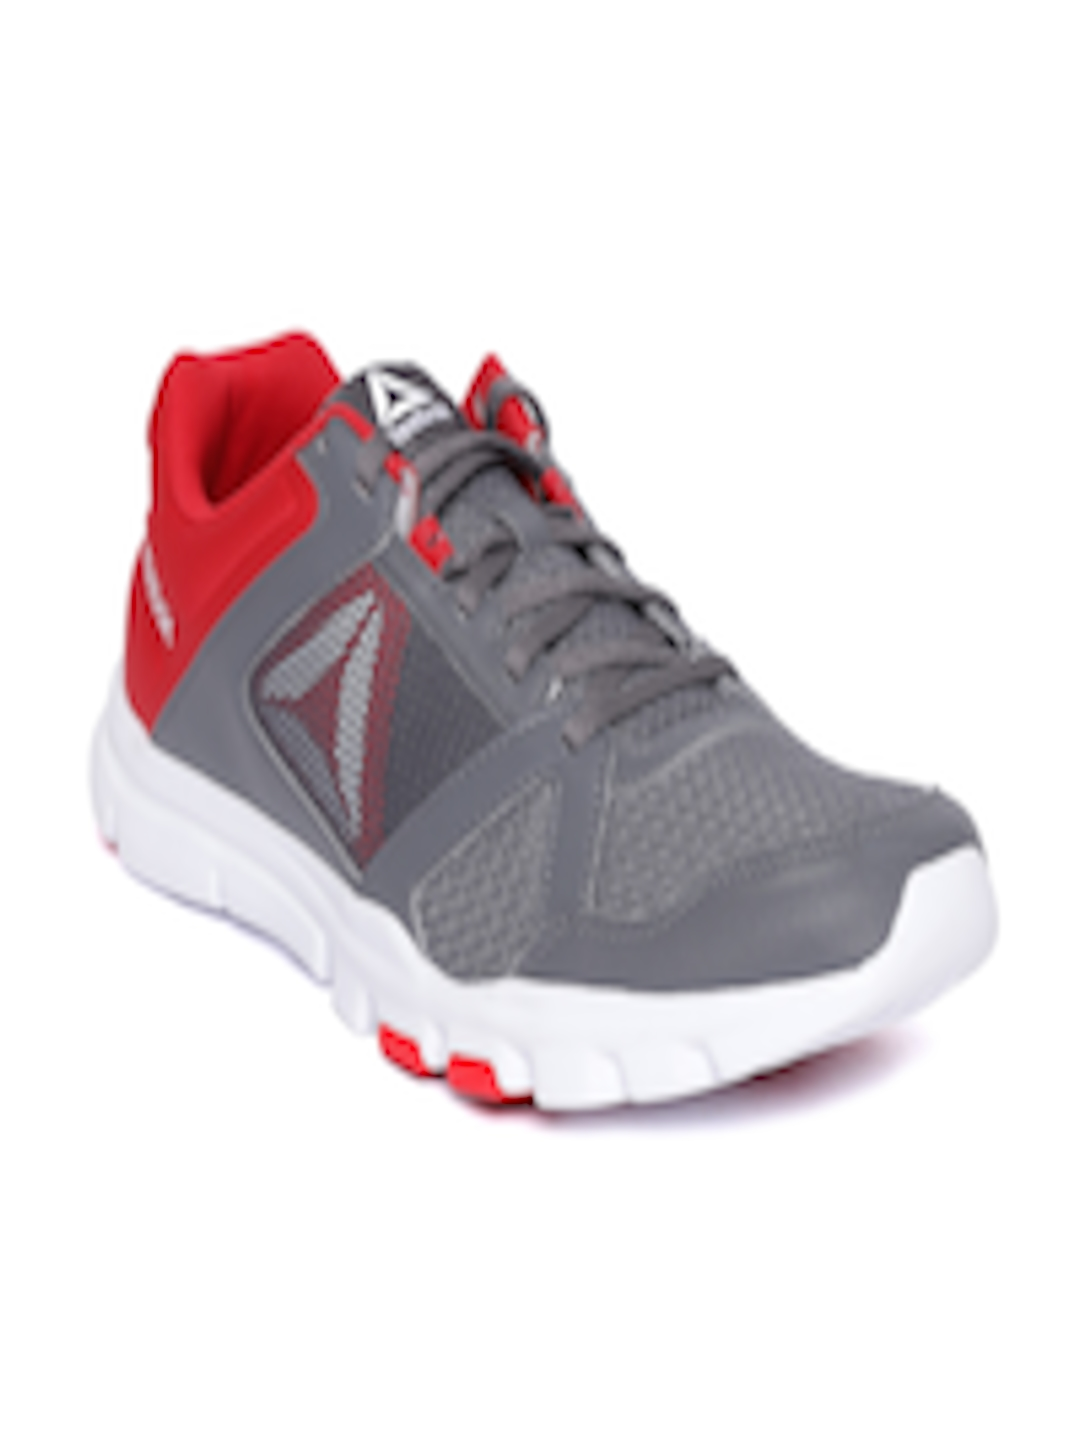 a943dbbf0cb7 Buy Reebok Men Grey YOURFLEX TRAIN 10 MT Training Or Gym Shoes - Sports  Shoes for Men 6916958